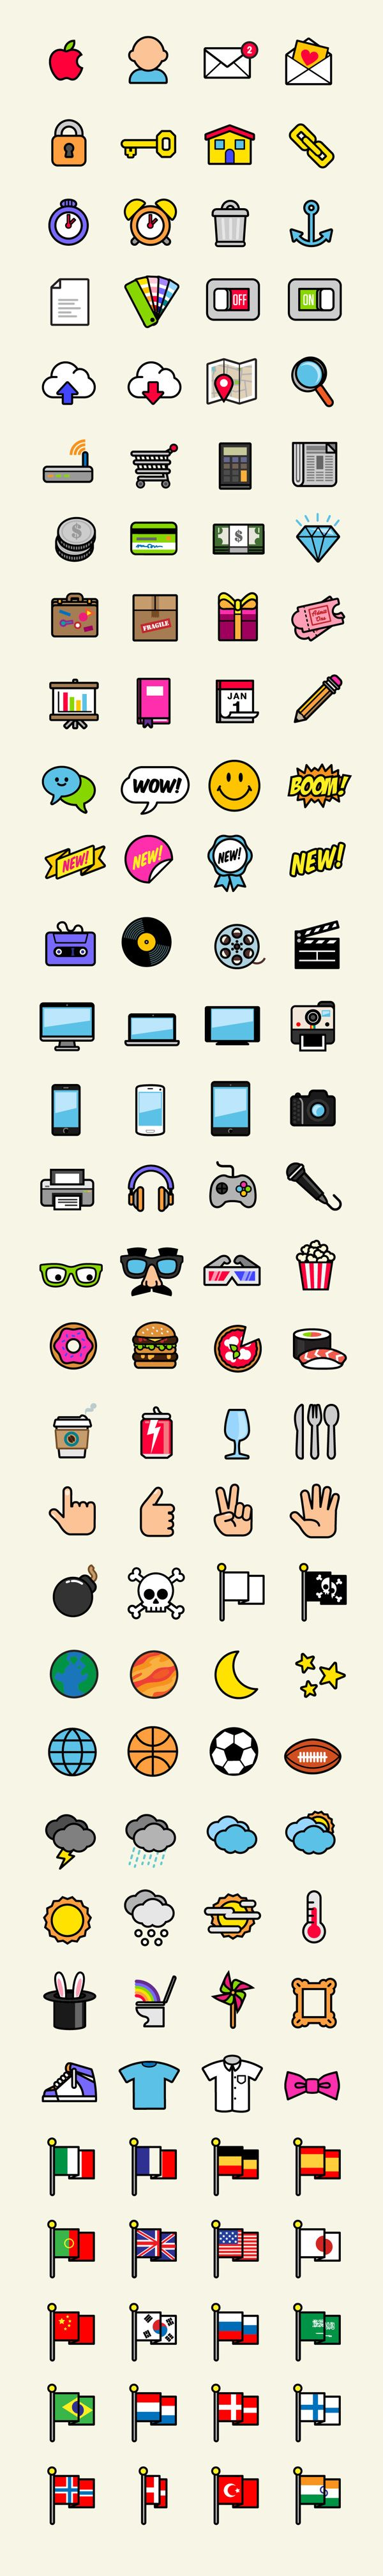 Pop icons essential pack (140 icons) by Rubens Cantuni, via Behance